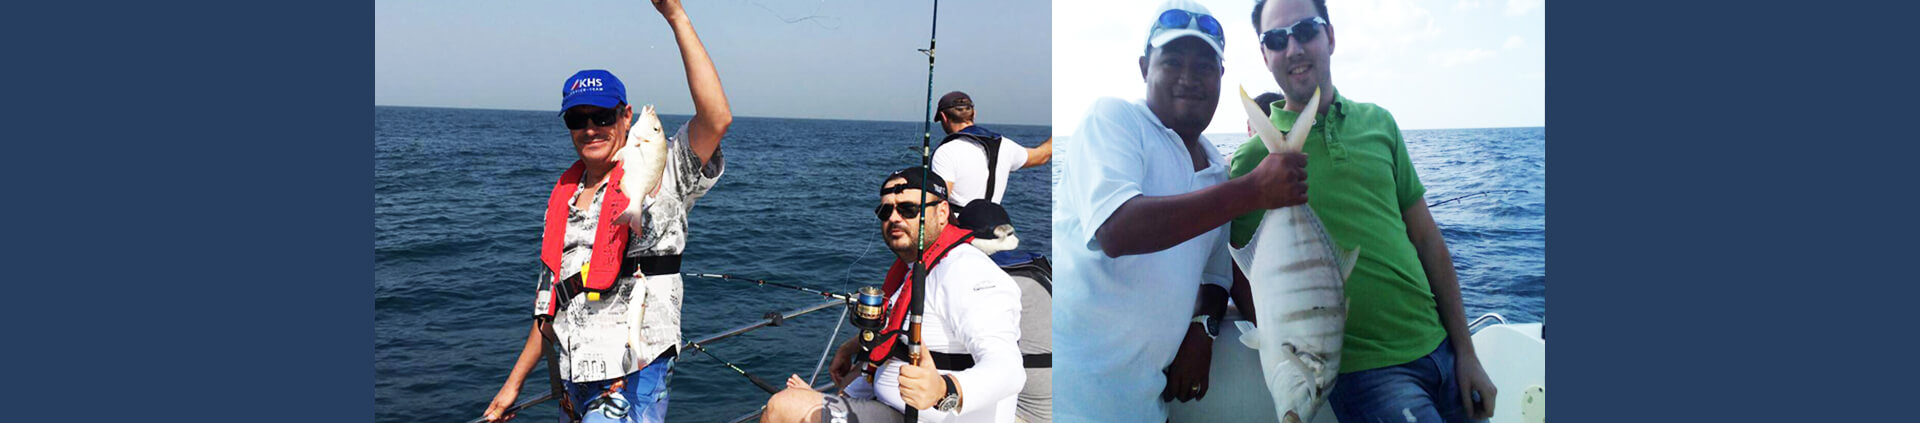 Fishing Trips Dubai